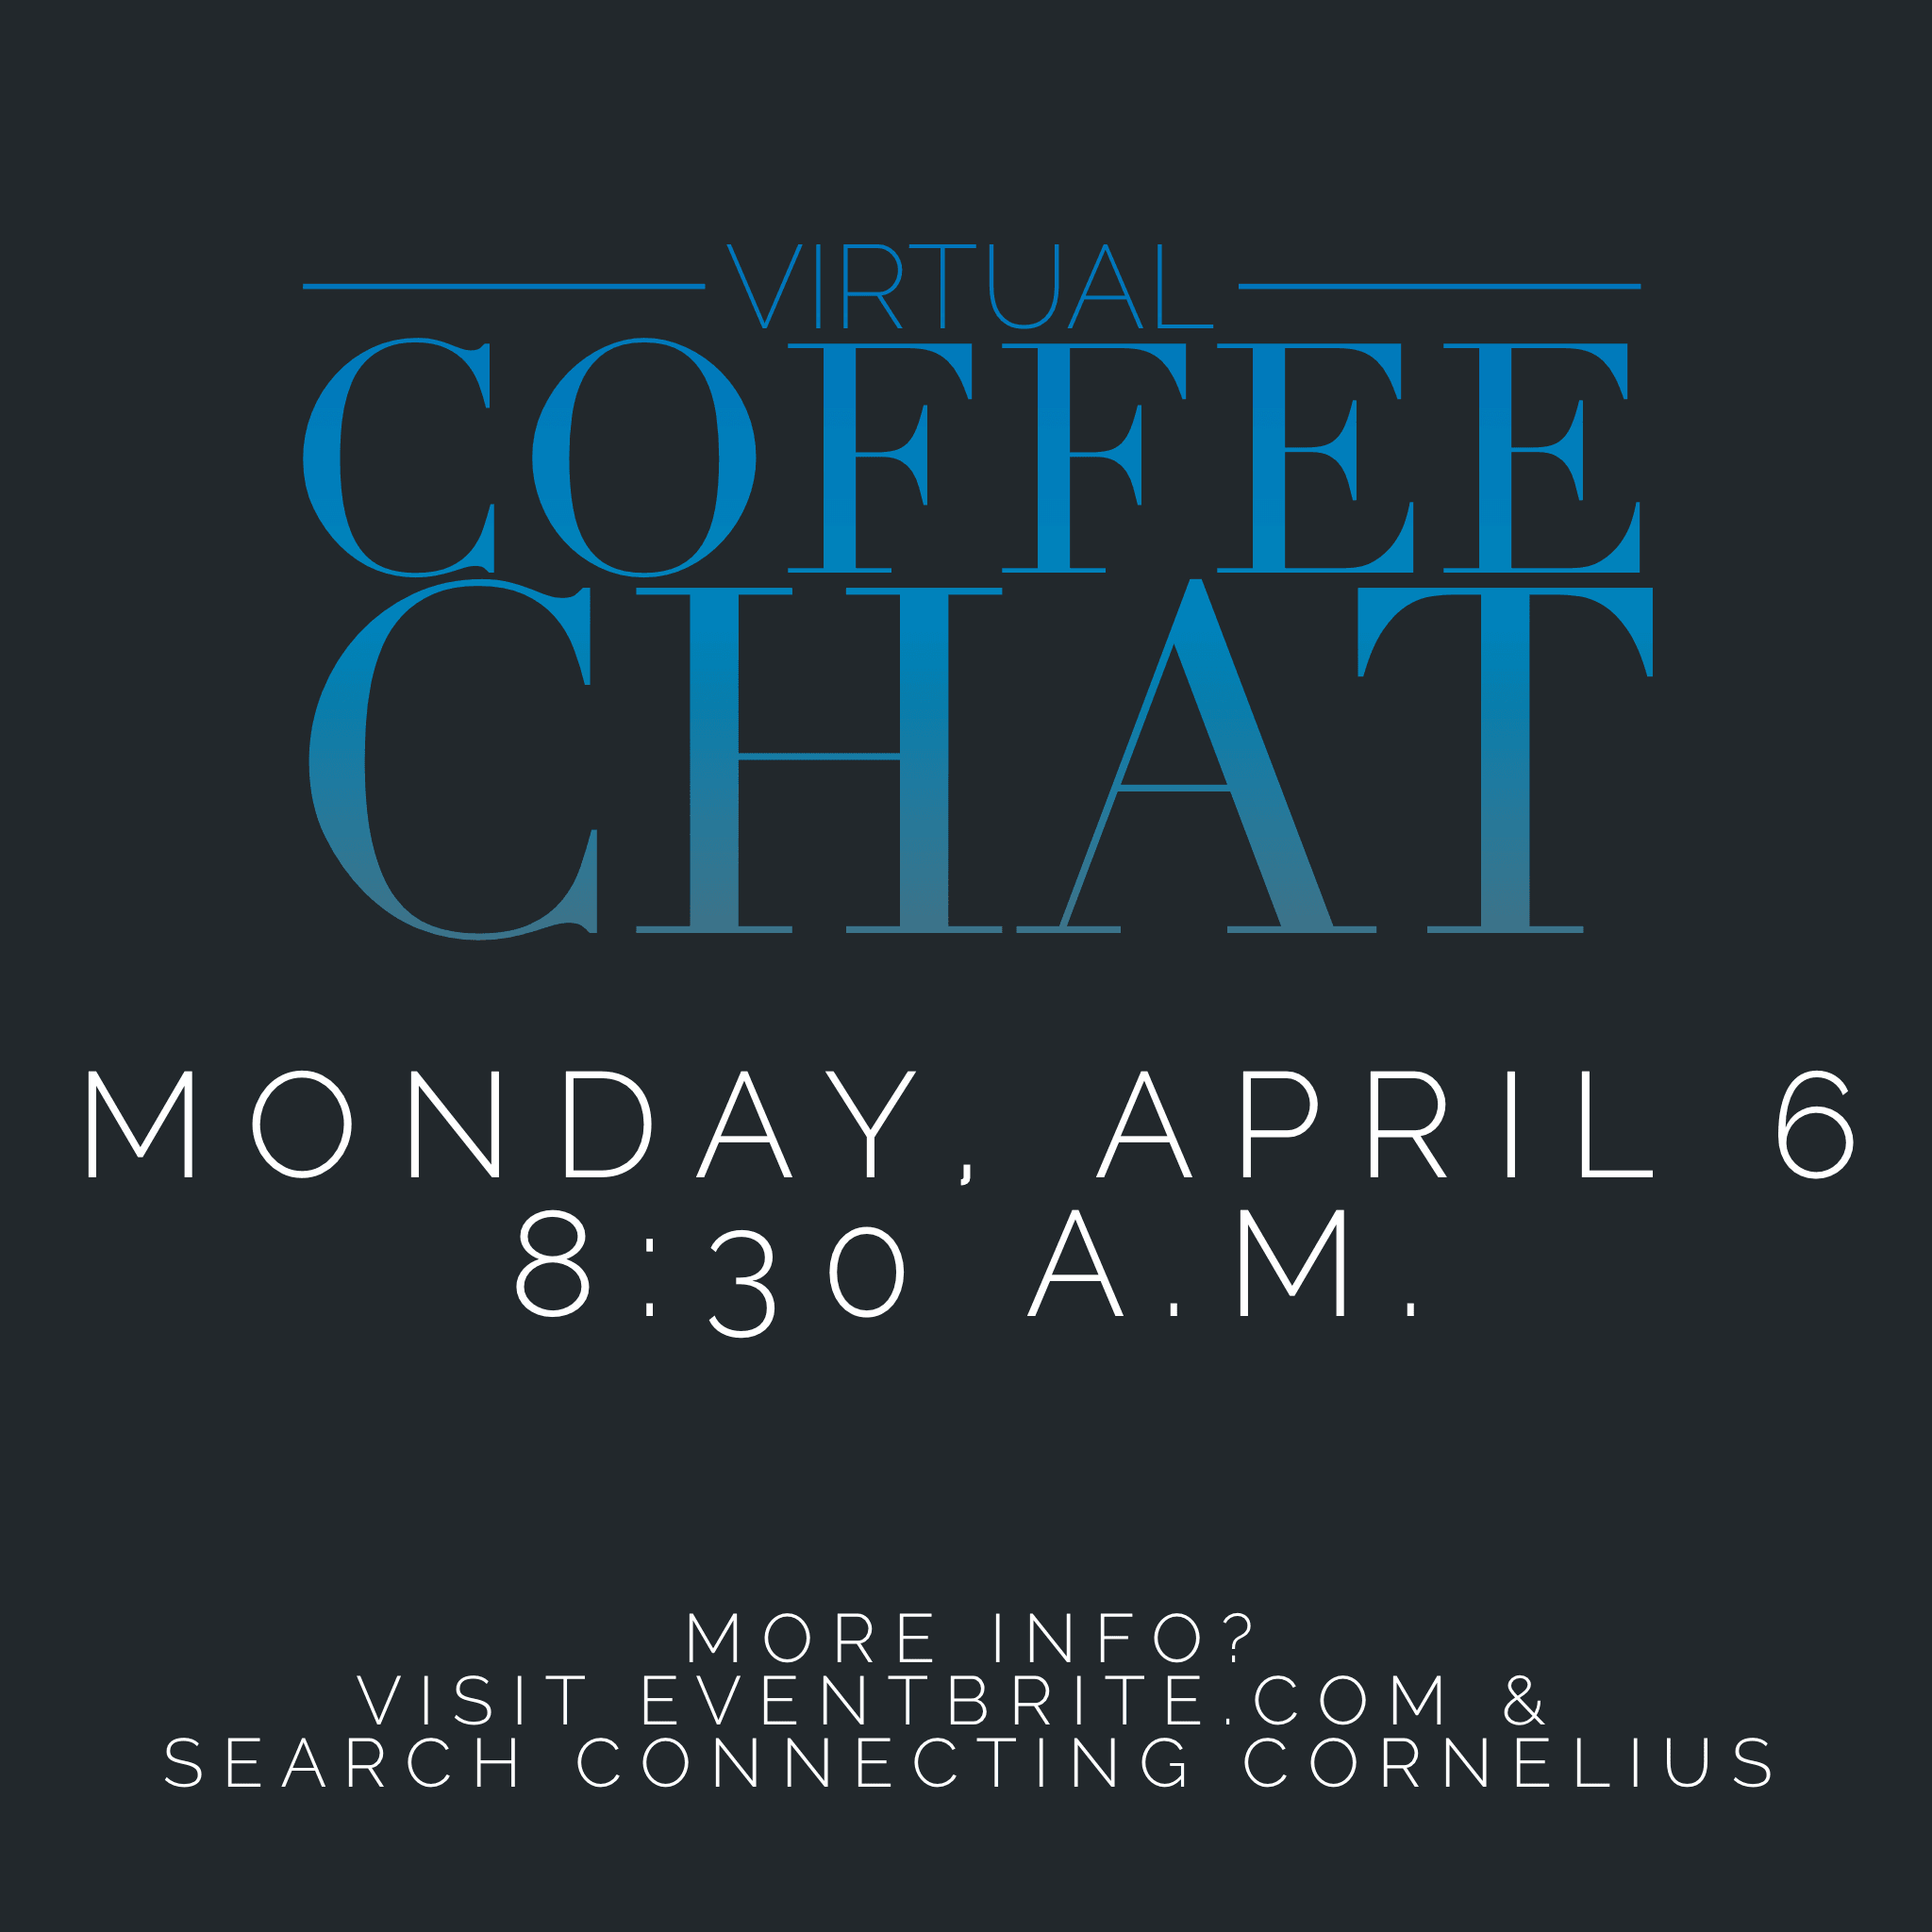 virtual coffee chat copy